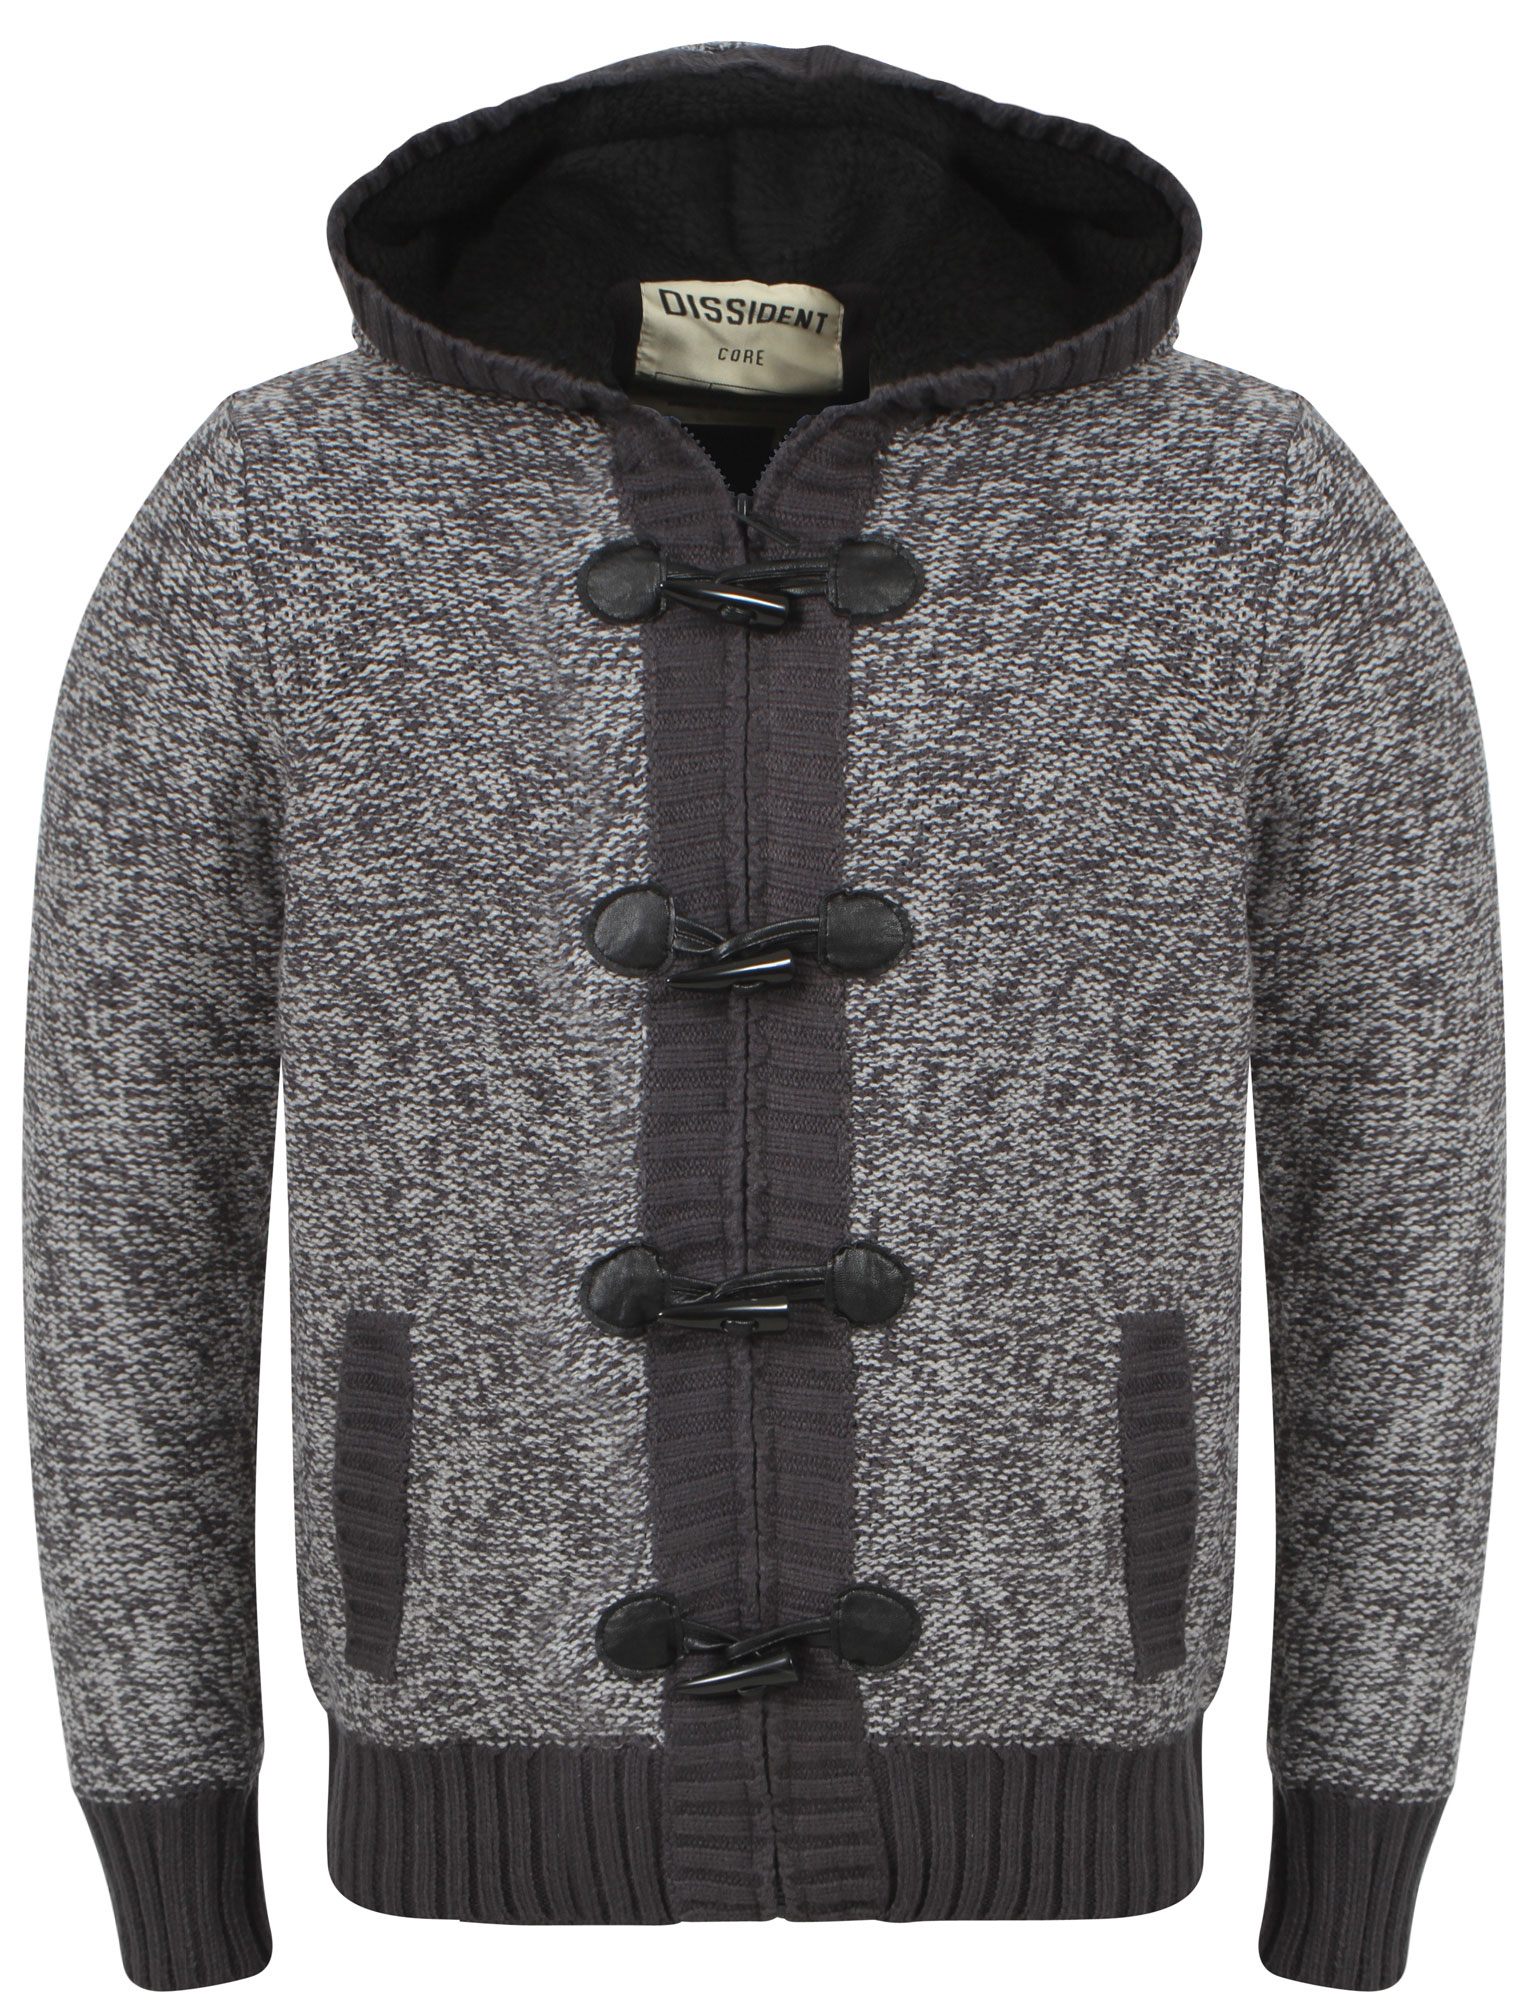 Picture 5 of 6 ... - Mens Dissident Mike Hooded Fleeced Knitted Zip Toggle Cardigan